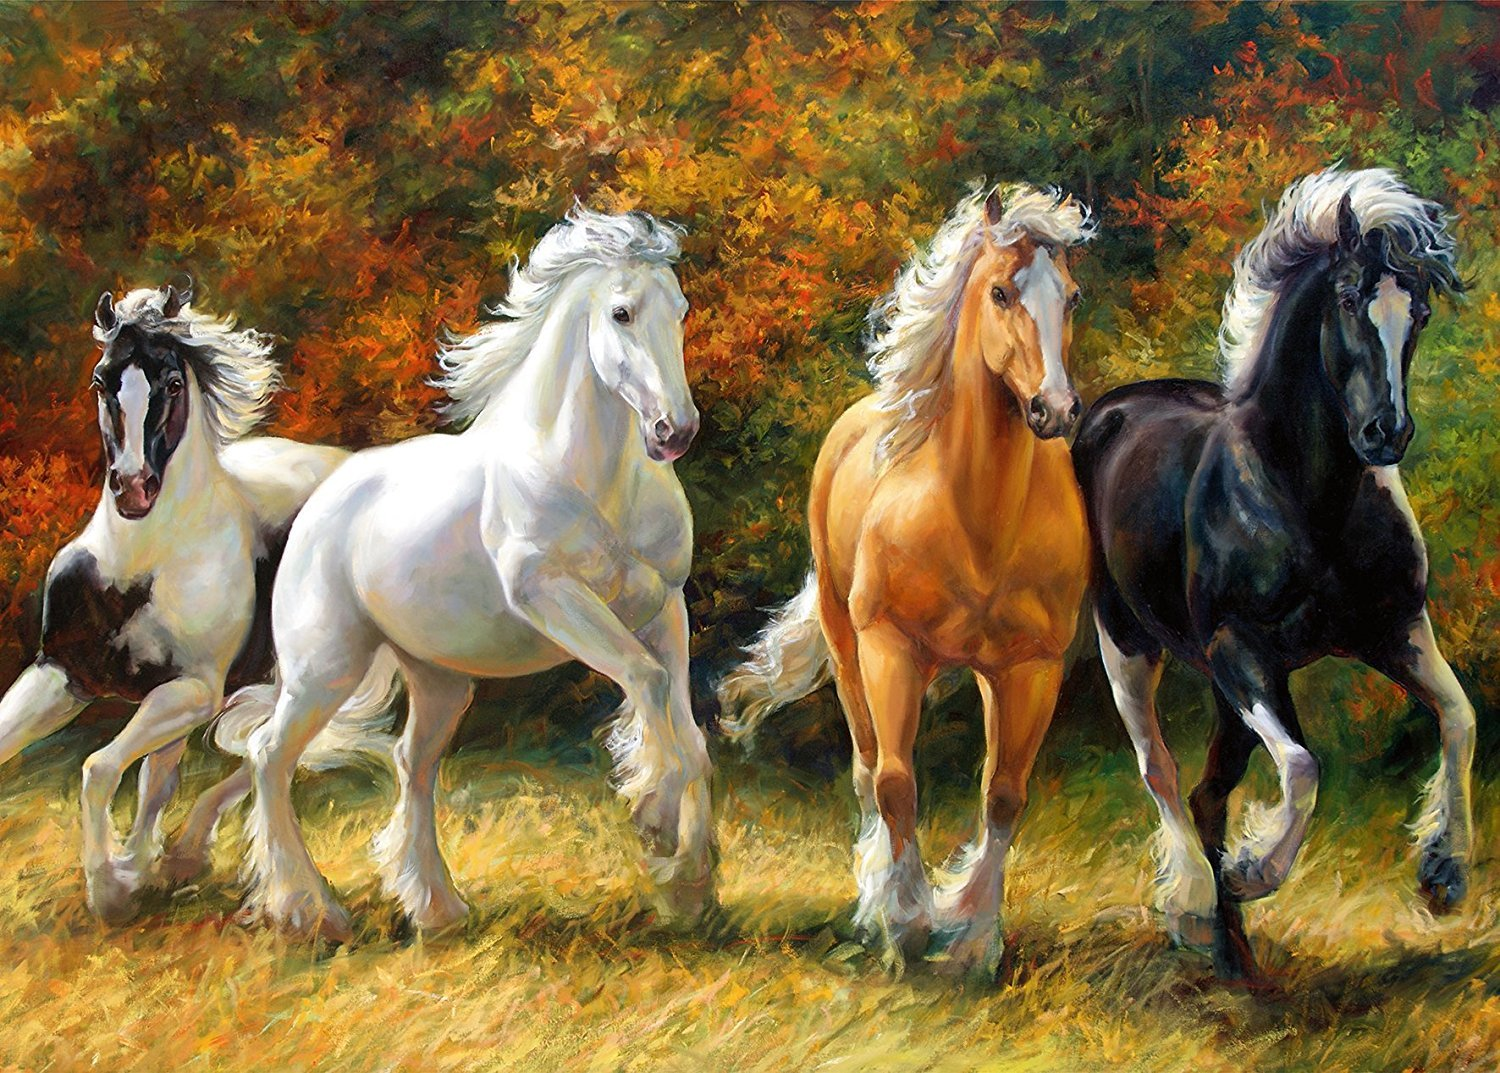 Uncategorized Horse Puzzle horse jigsaw puzzles that will absolutely capture your imagination galloping puzzle